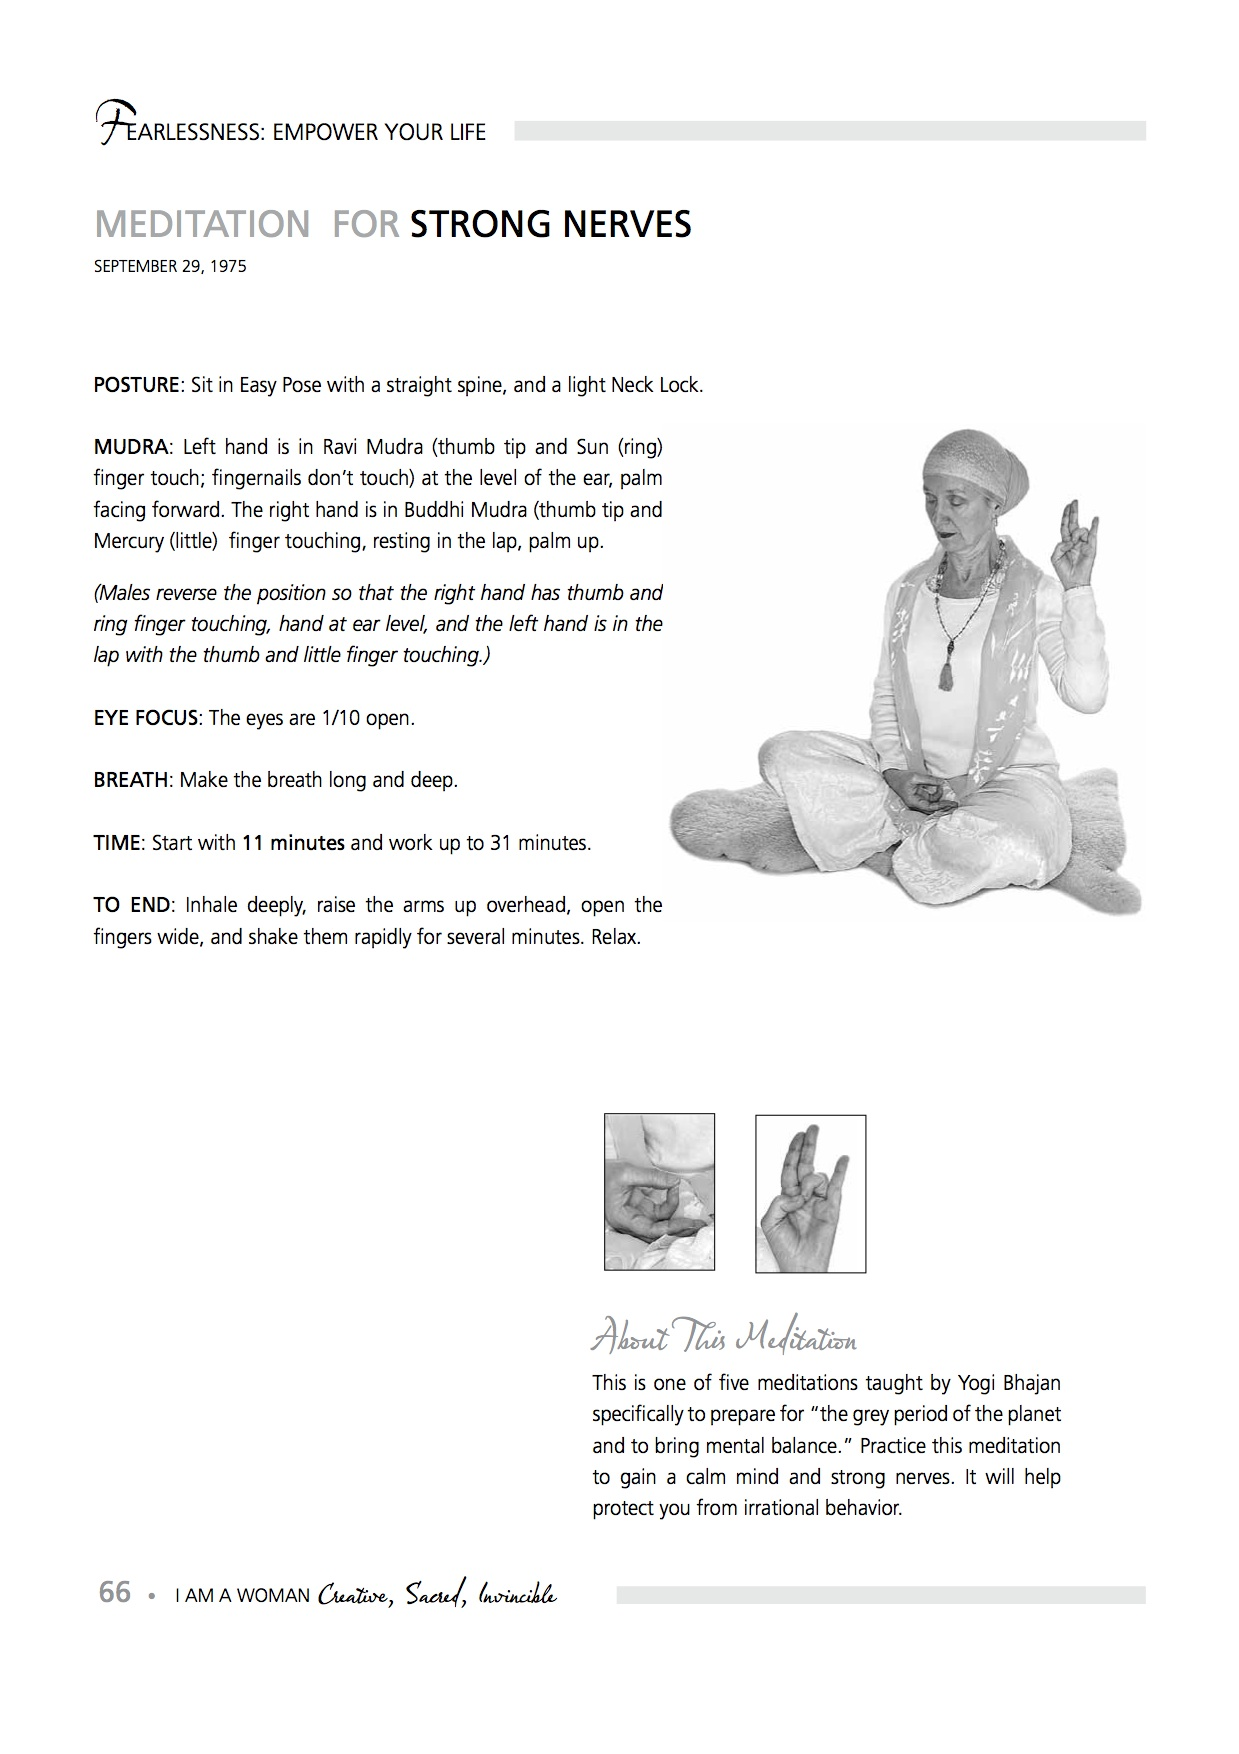 Meditation For A Strong Mind And Calm Nerves